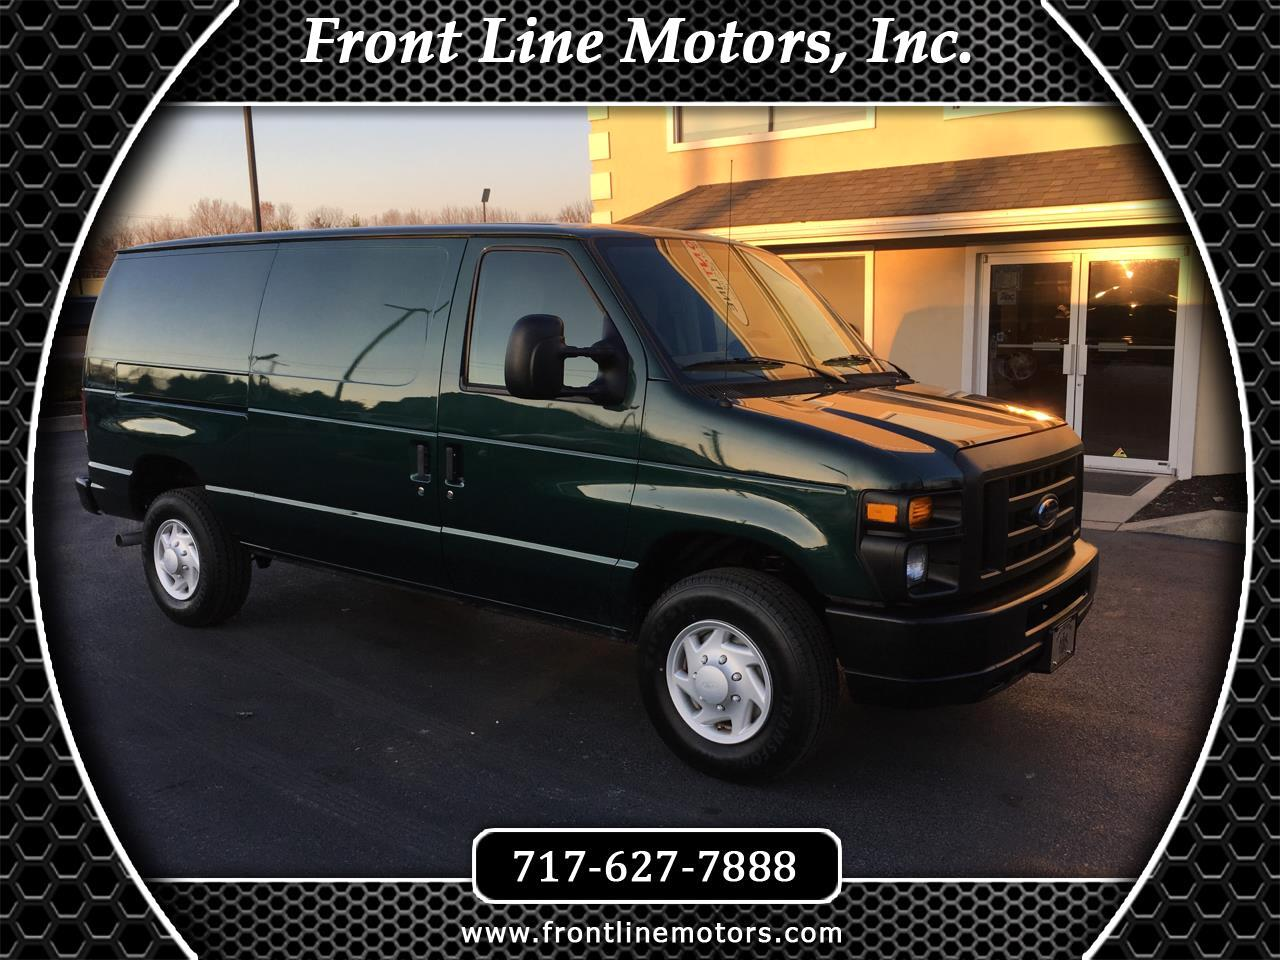 2009 Ford Econoline Cargo Van E-350 Super Duty Commercial